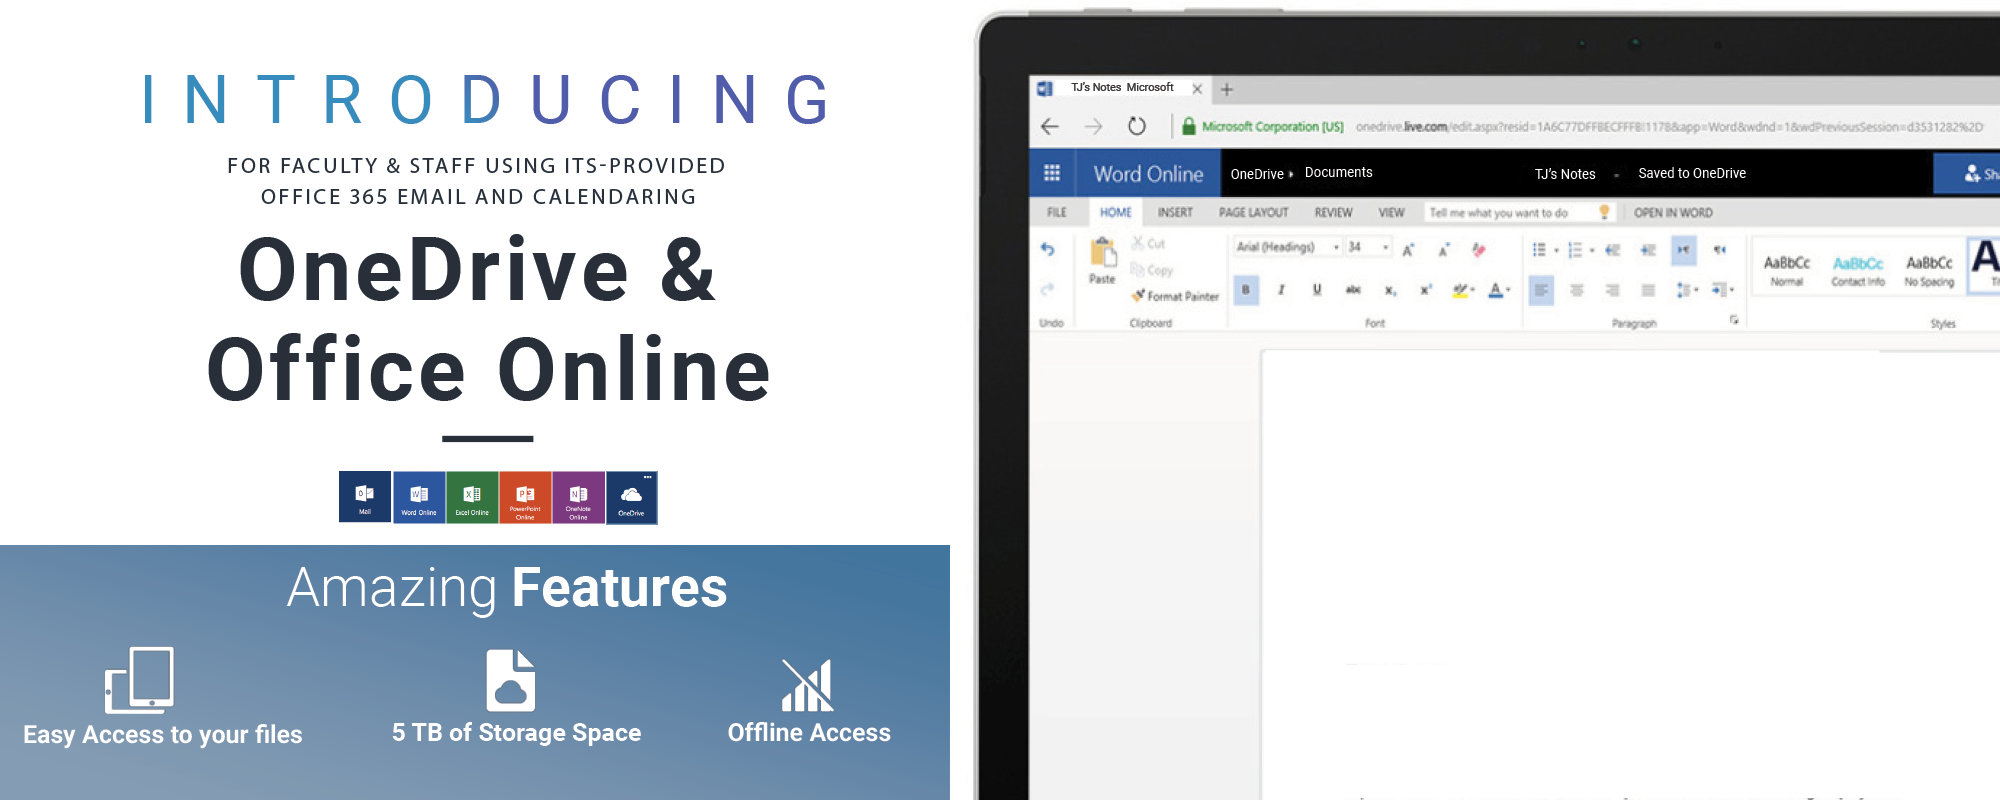 Office 365 OneDrive & Office Online